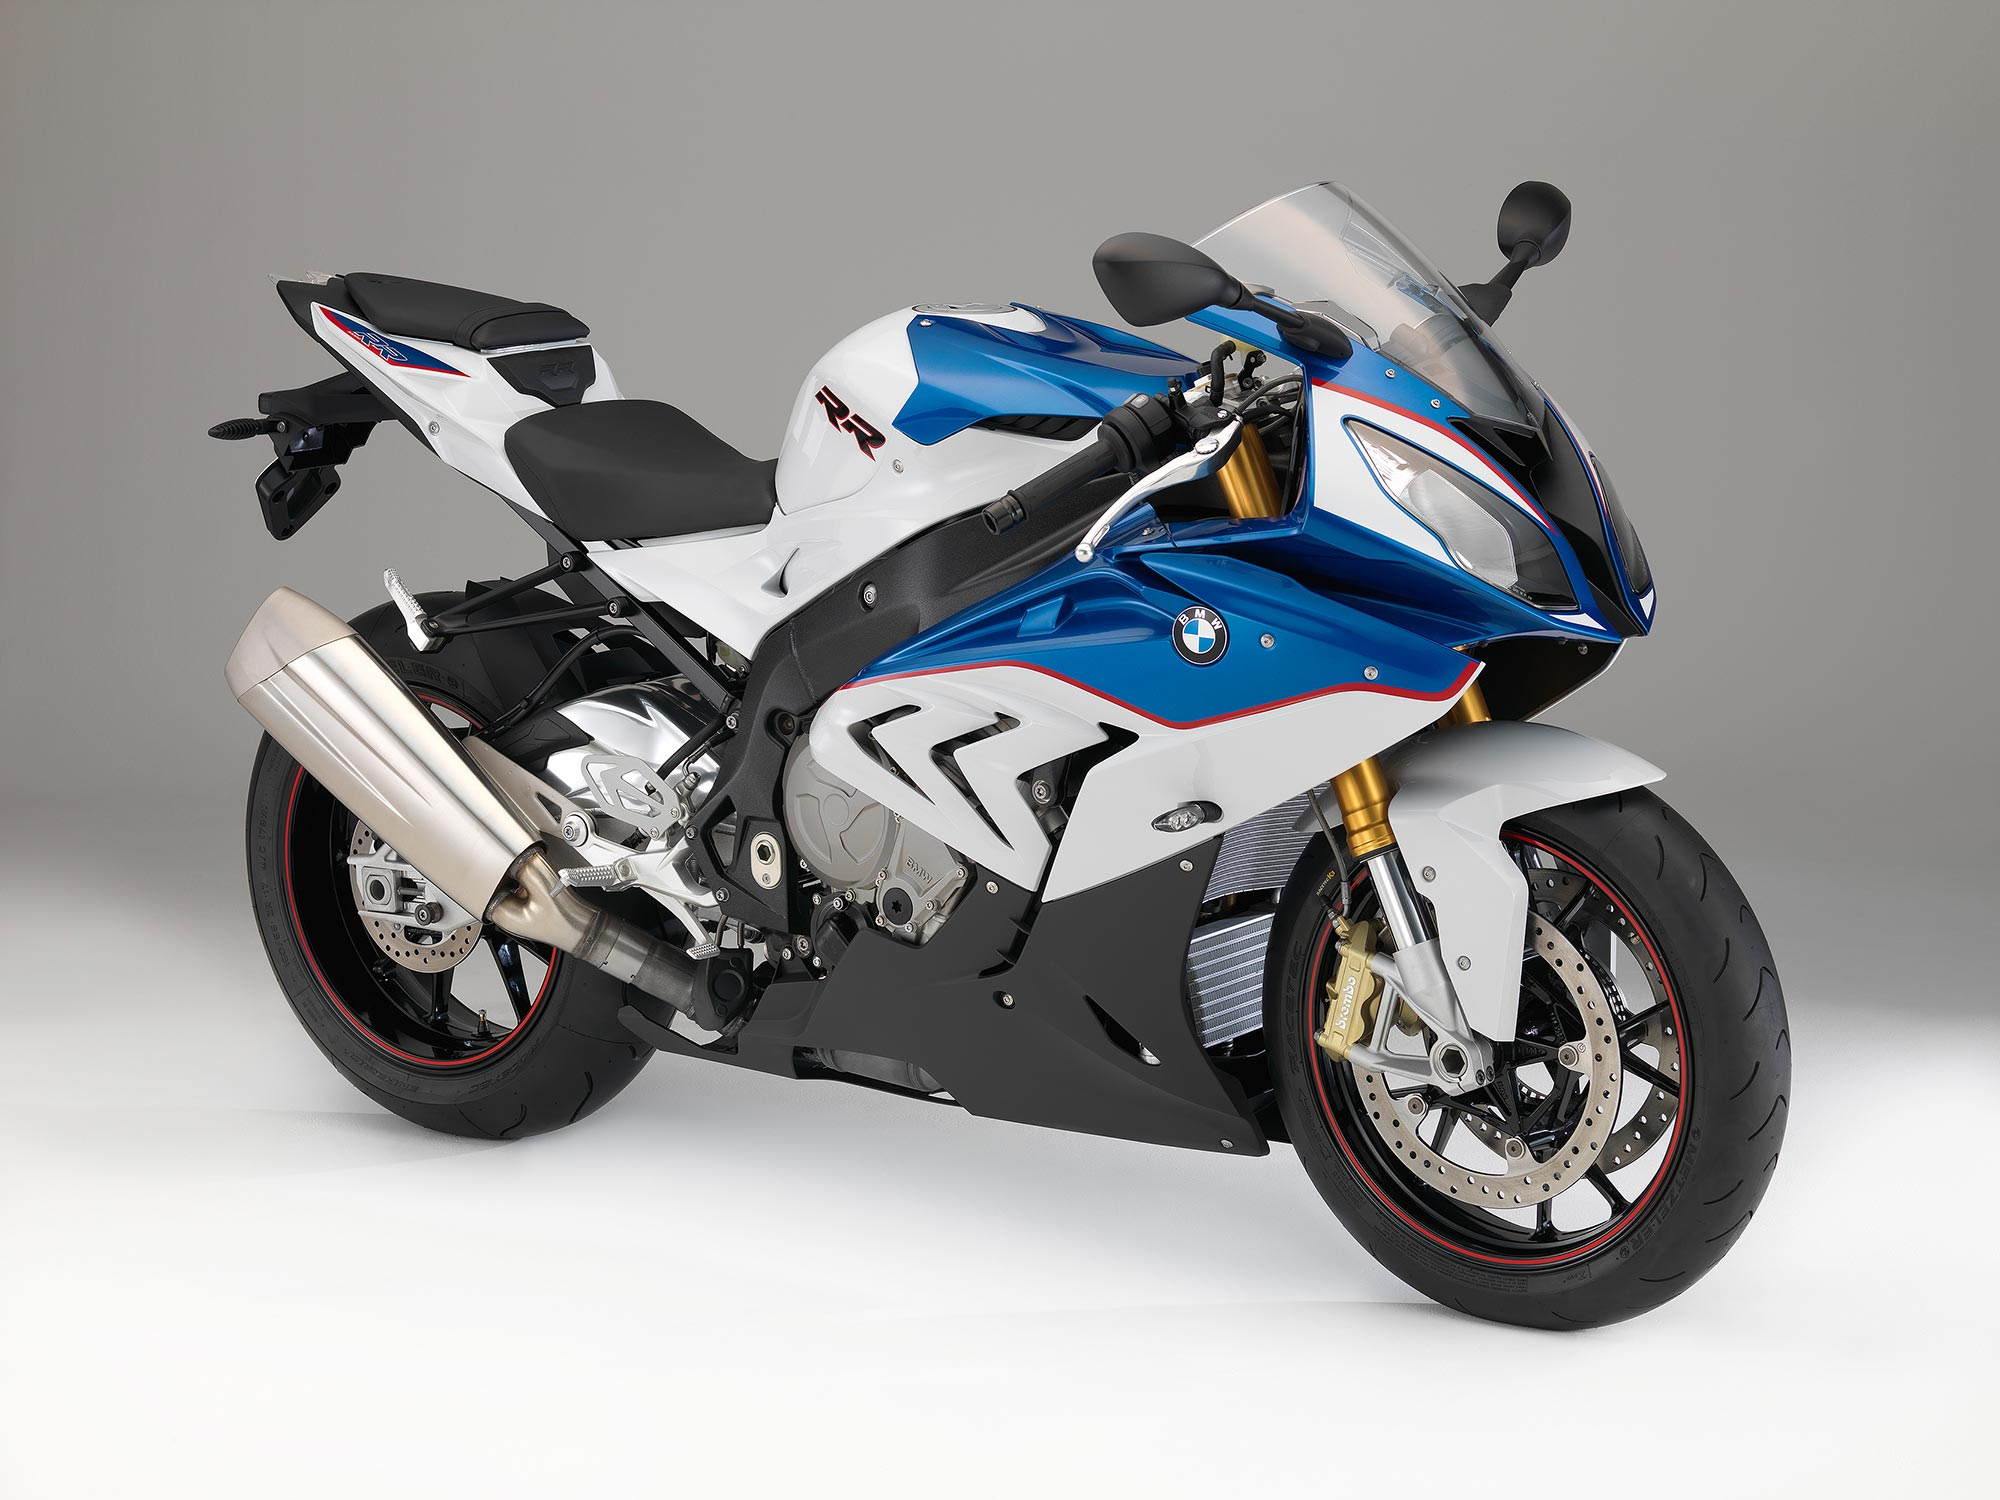 2015 bmw s1000rr 199hp new chassis cruise control